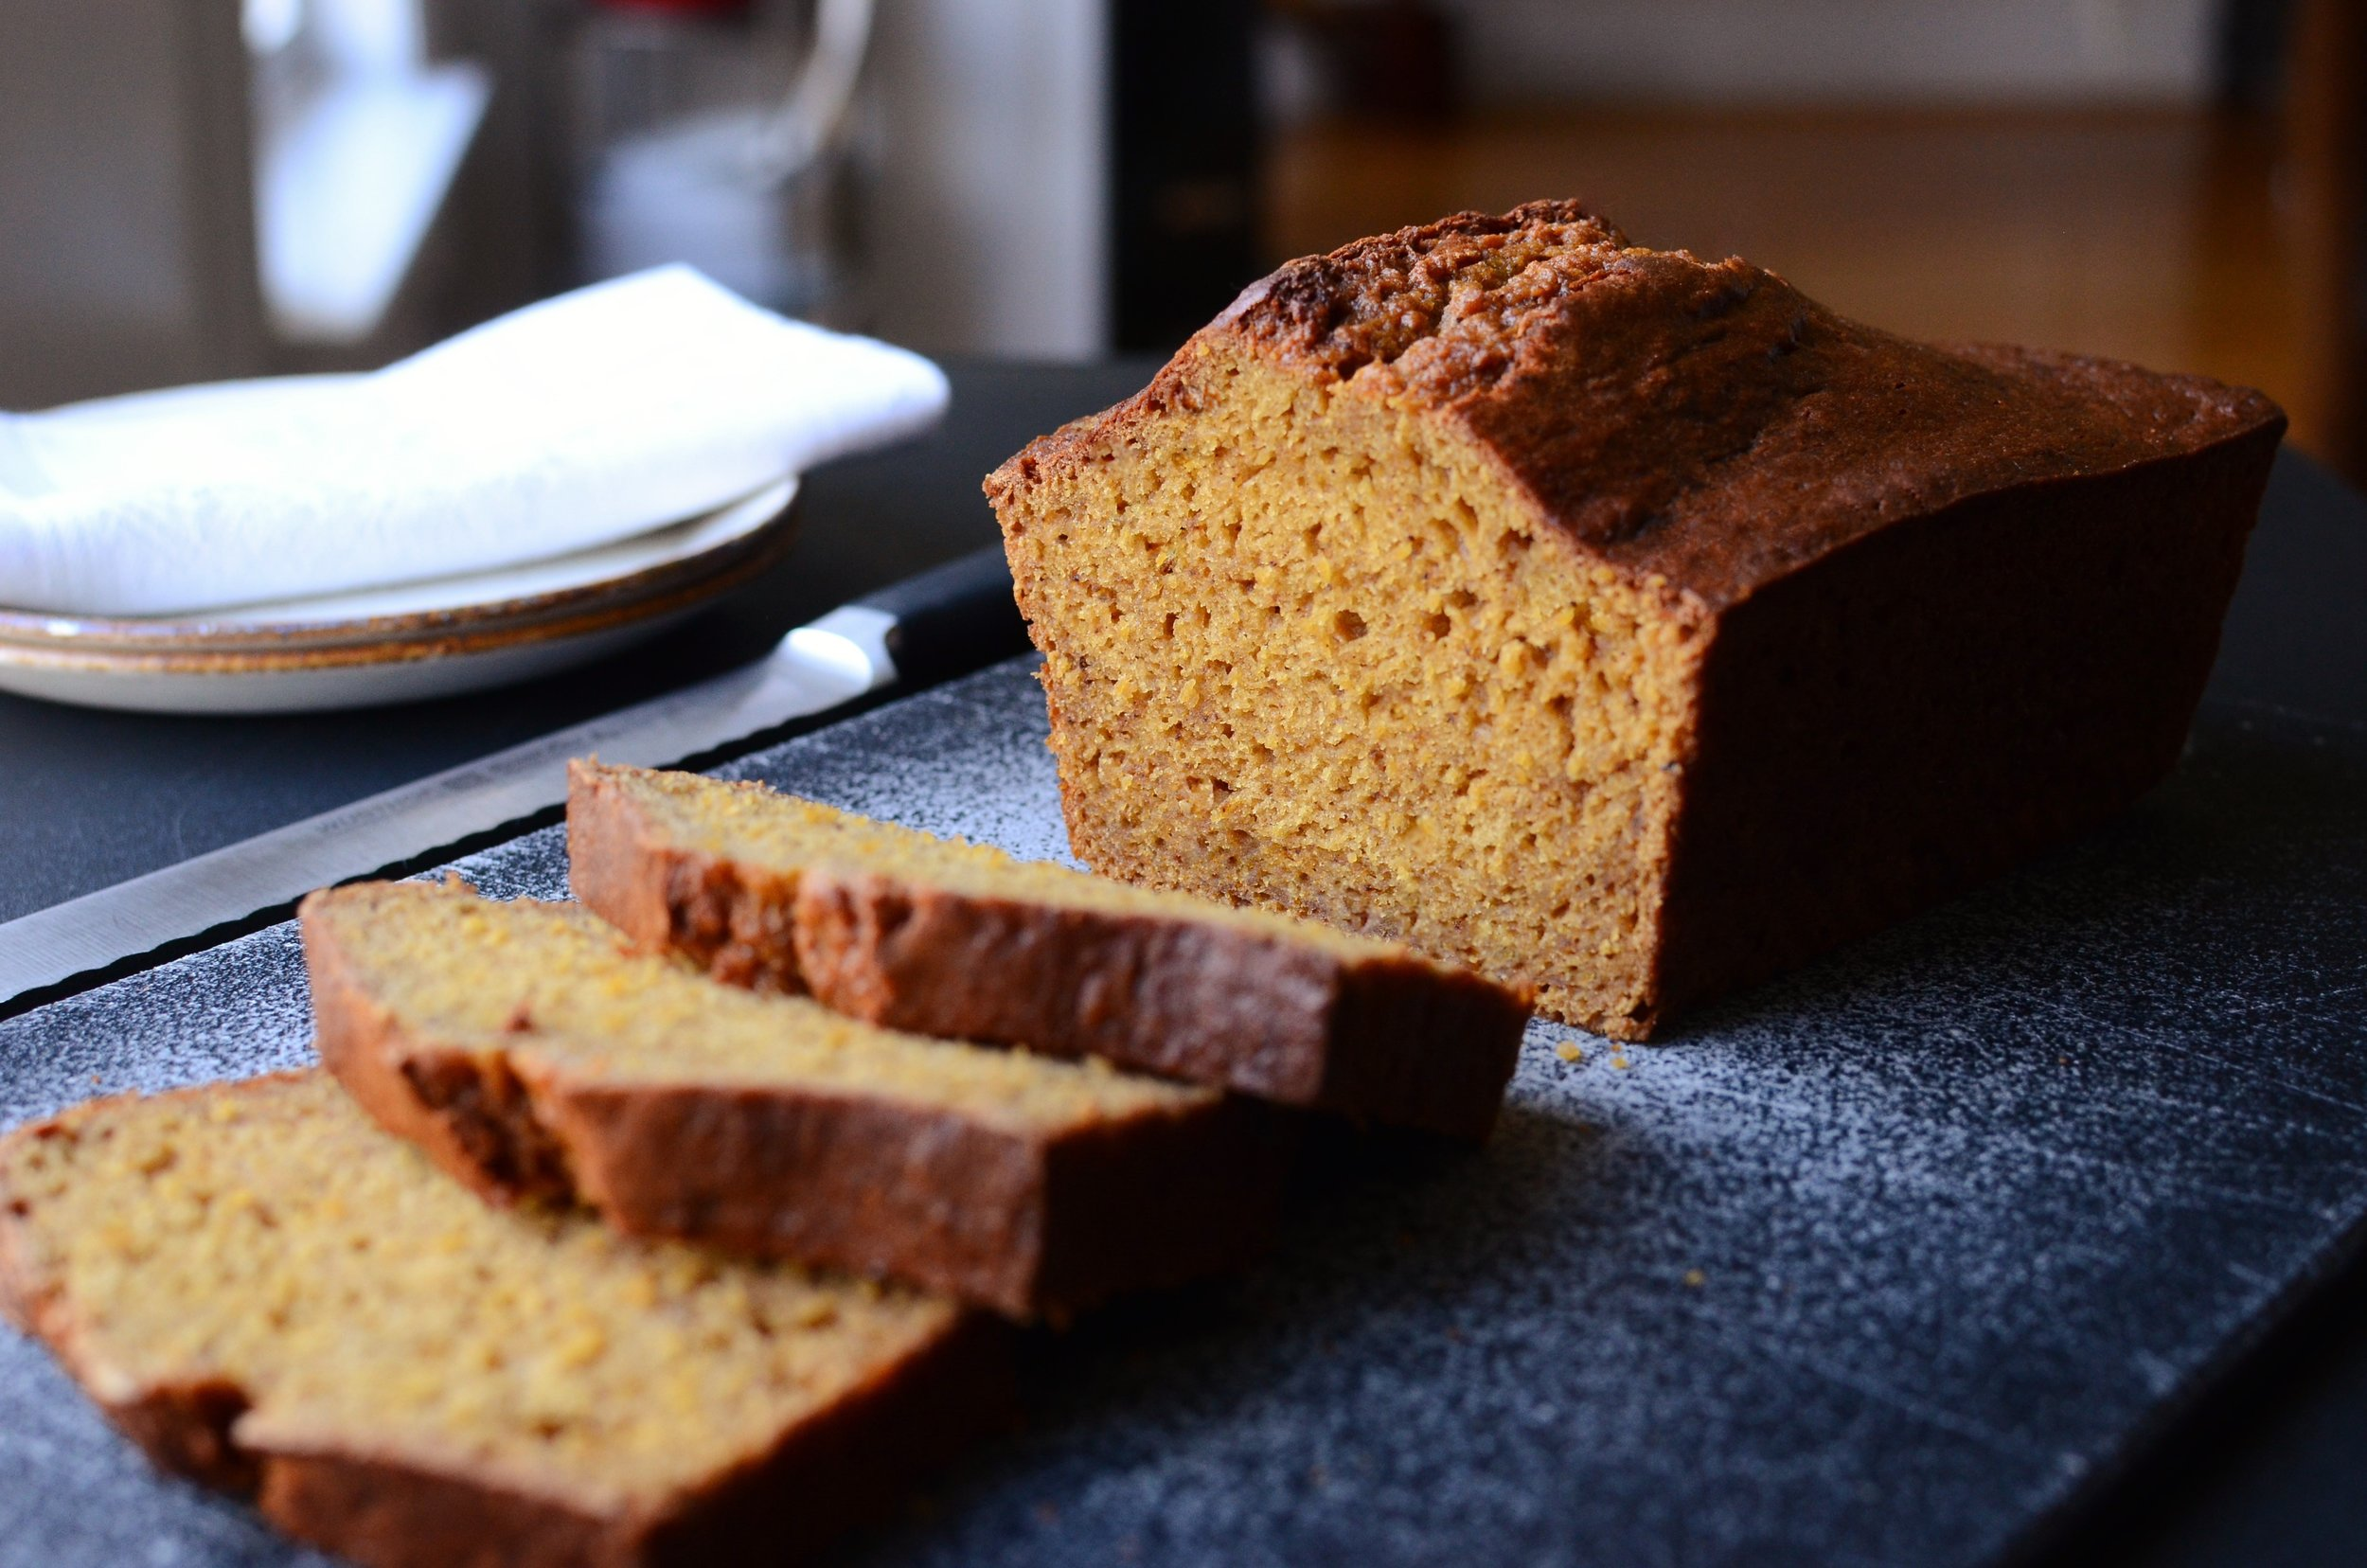 acorn squash quick bread recipe with step-by-step photos.